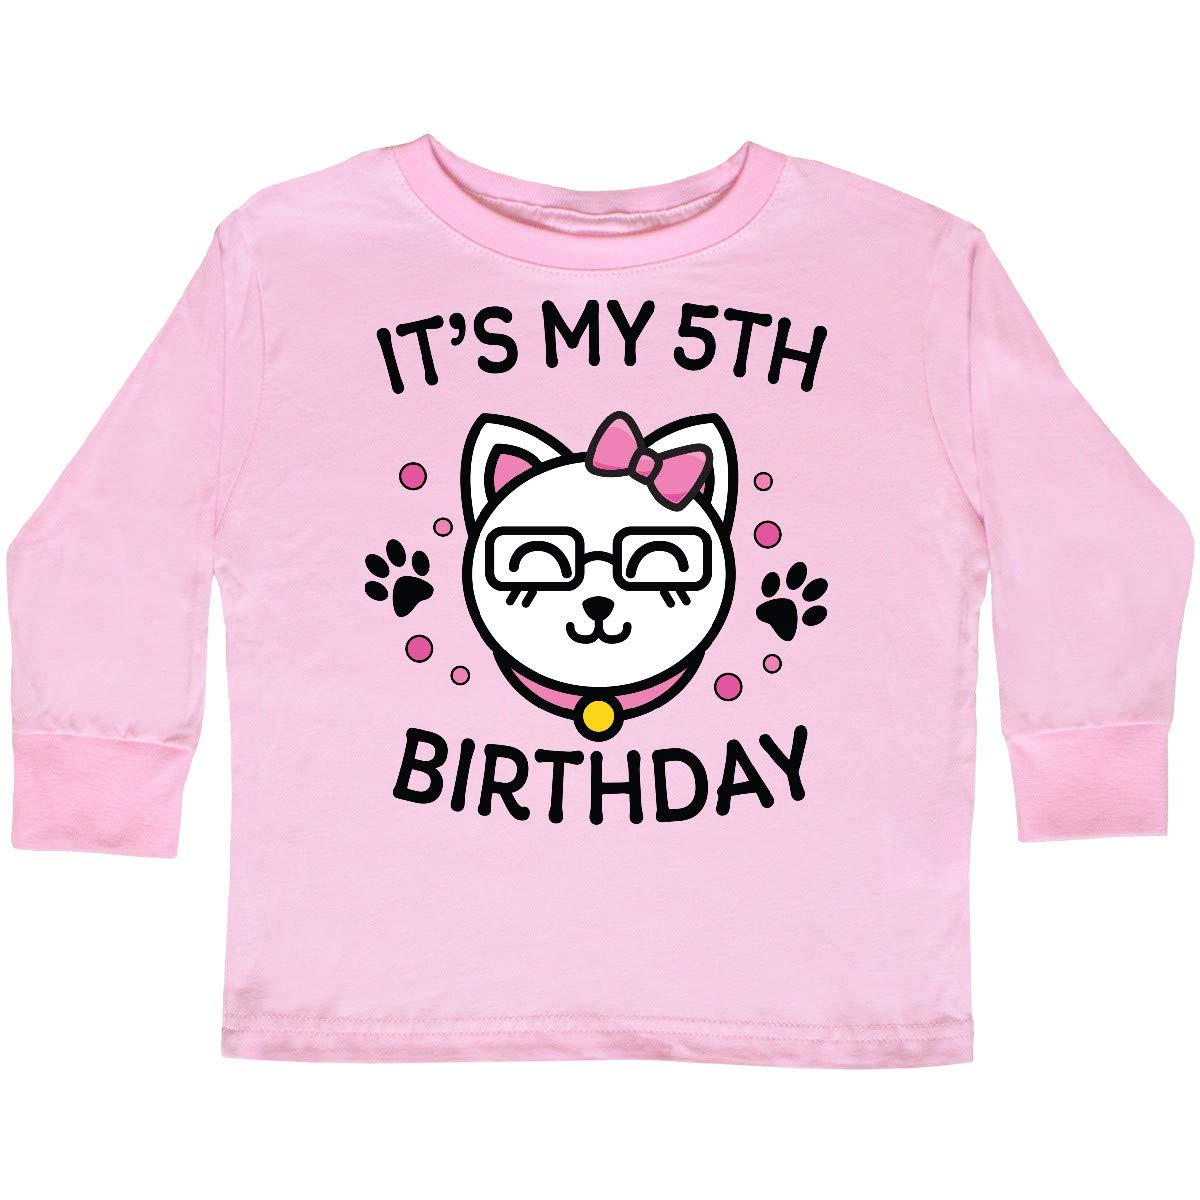 inktastic Its My 5th Birthday with Cat in Glasses Toddler Long Sleeve T-Shirt